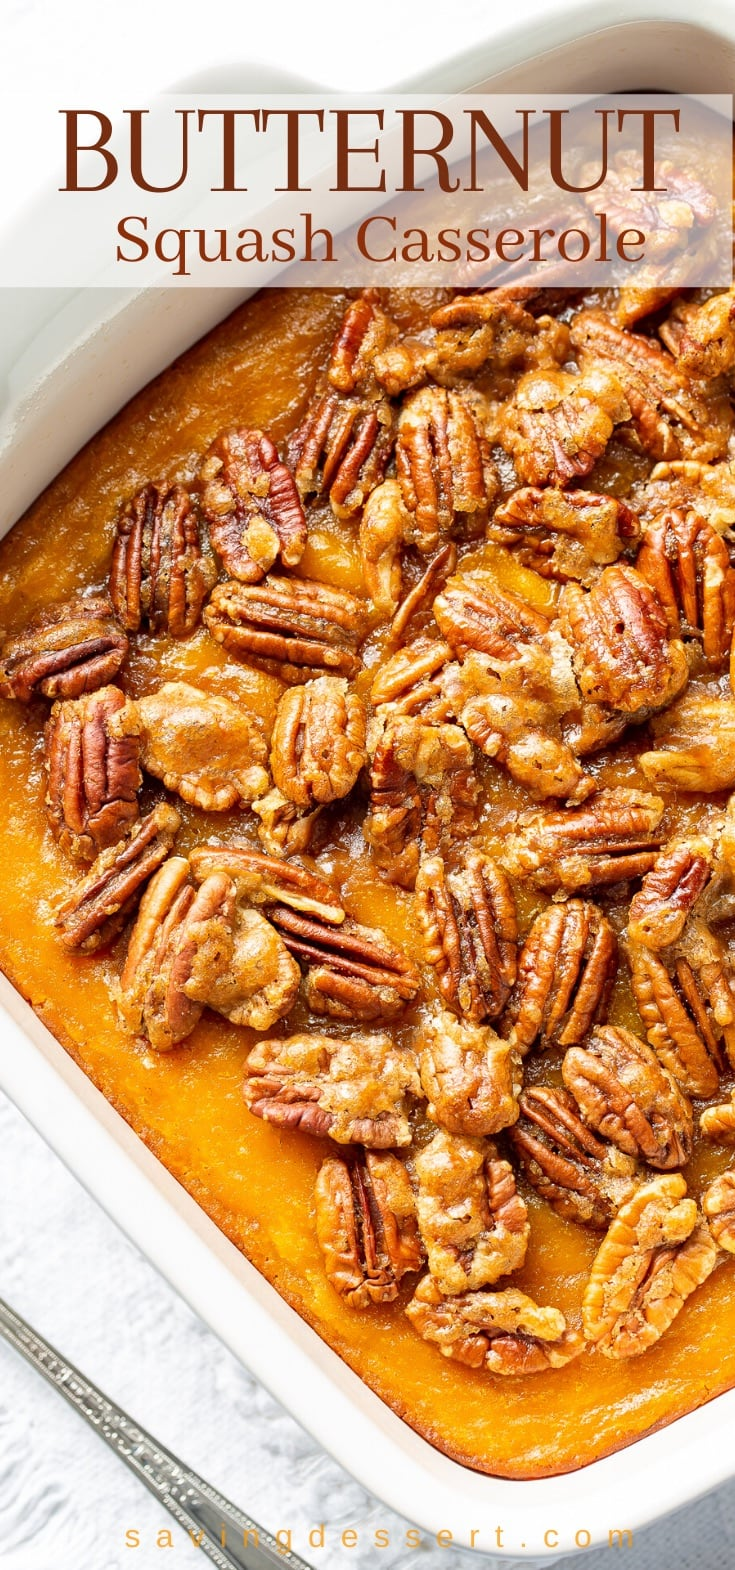 Butternut squash casserole topped with pecans